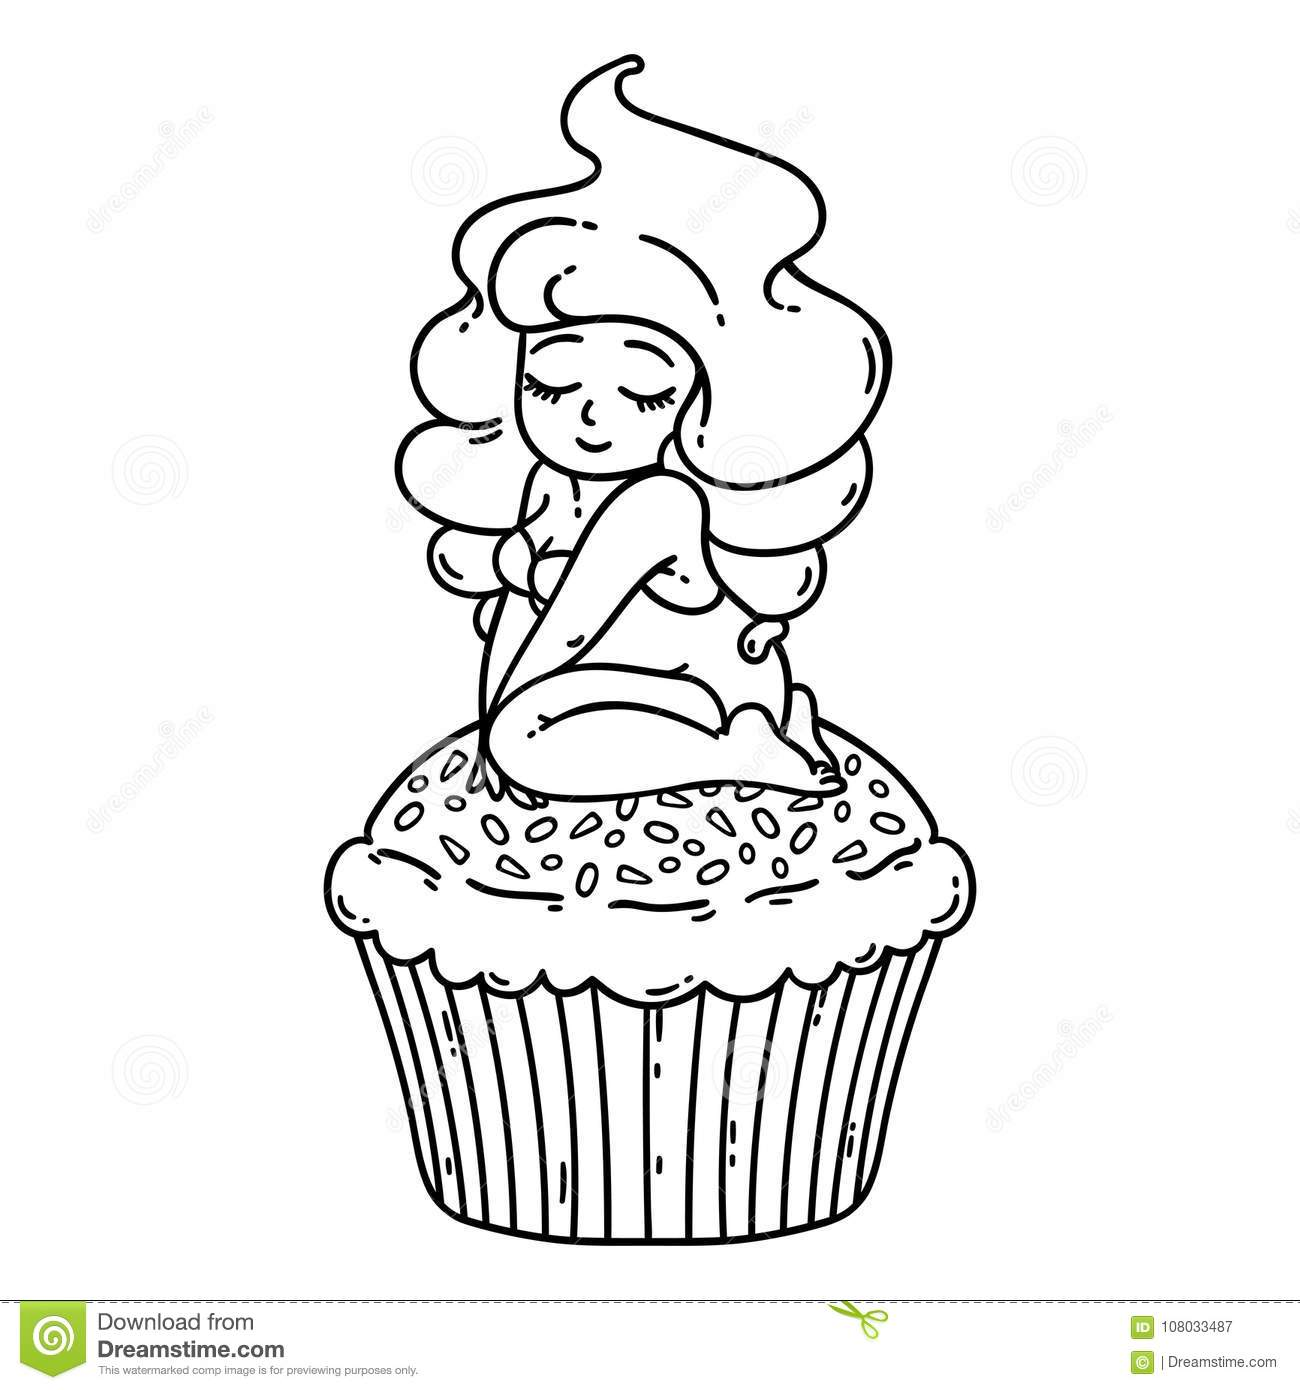 Cupcake cream fairy. Cute girl on cupcake. Isolated objects on white background. Vector illustration. Coloring outline.